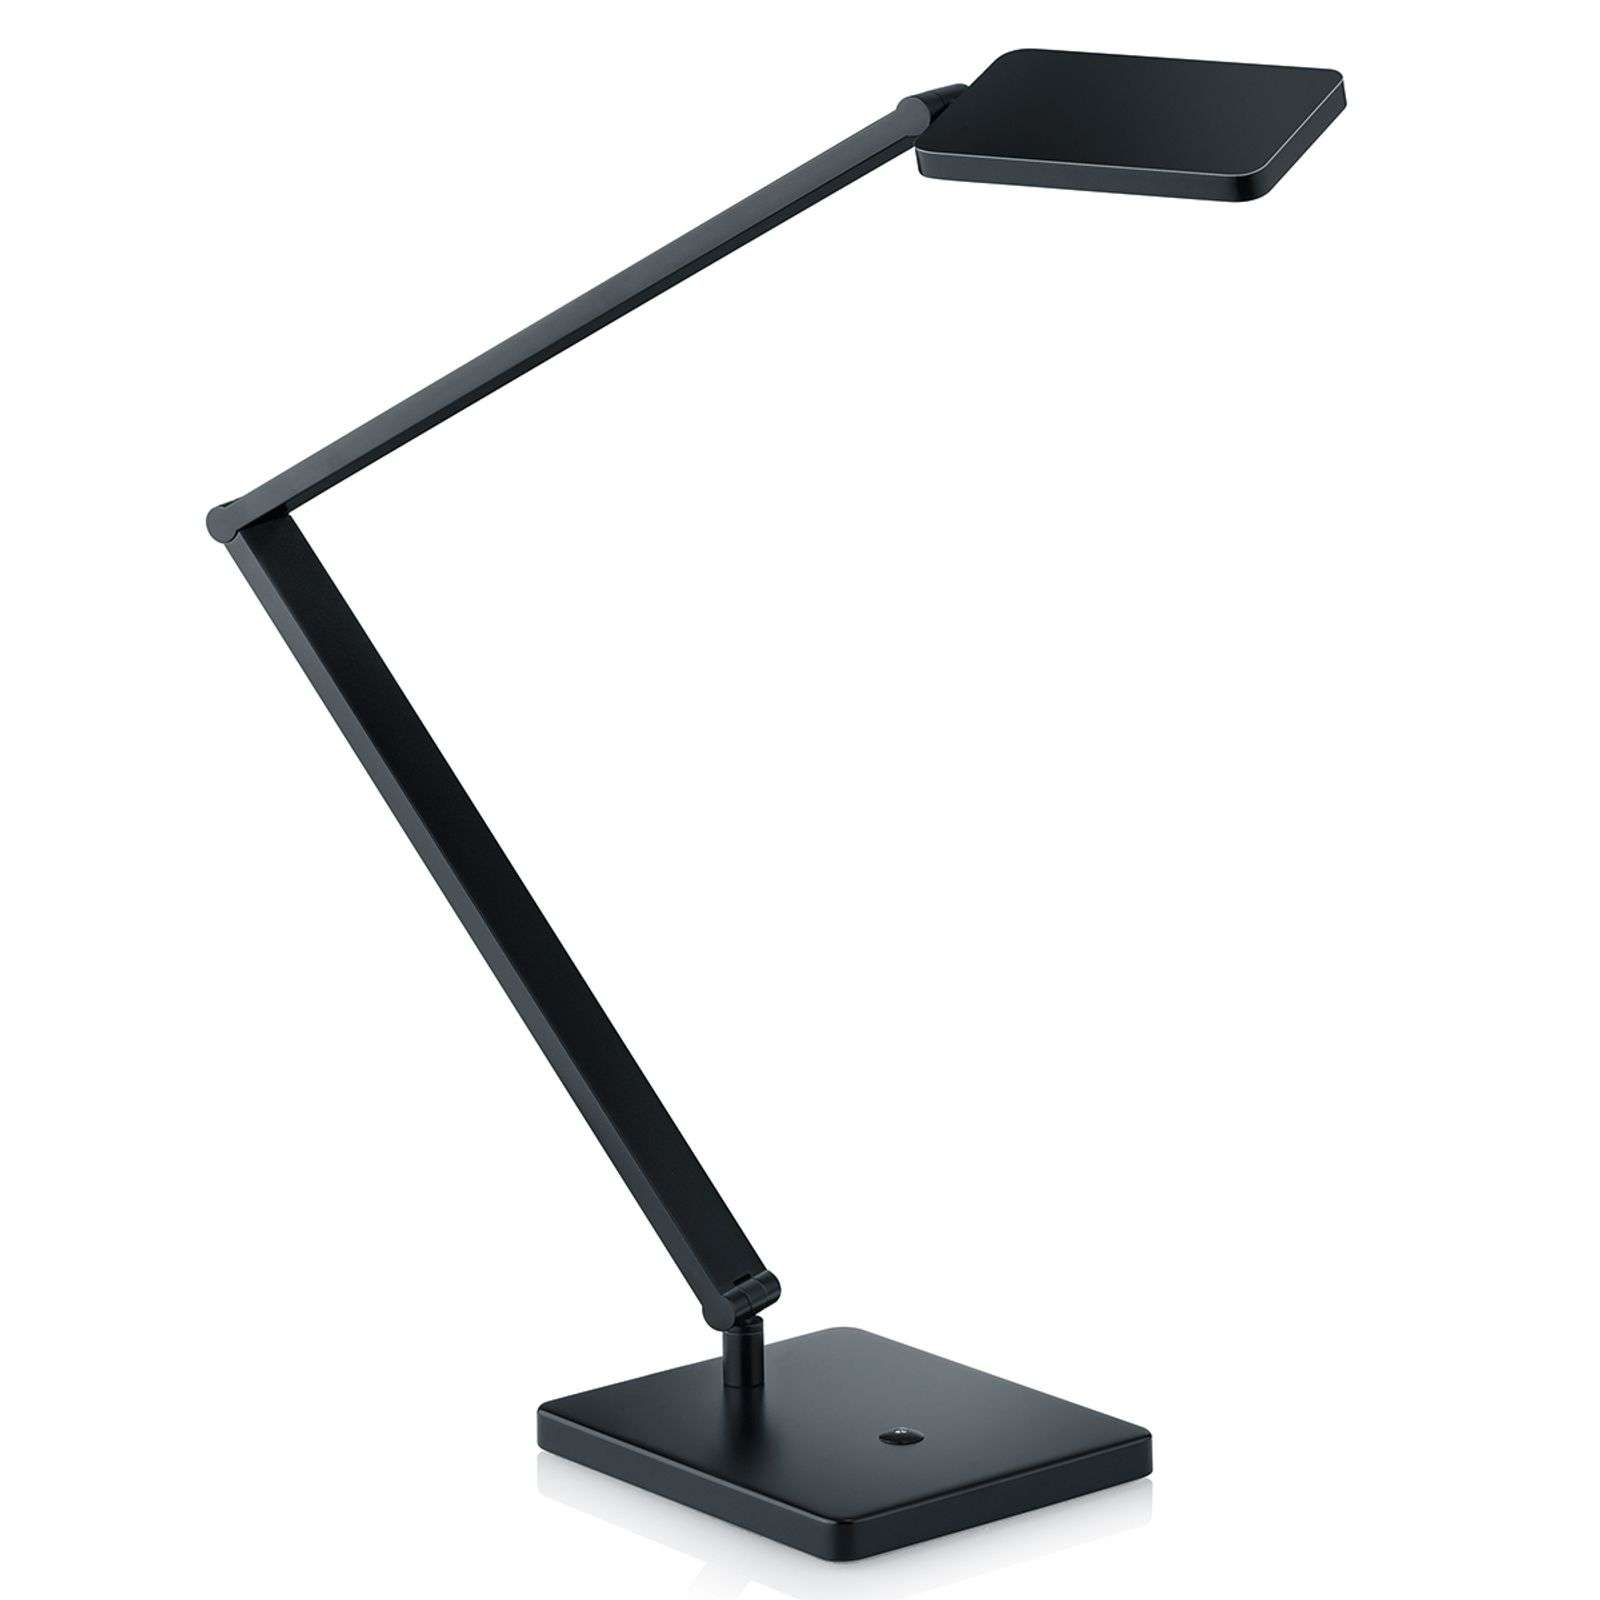 Lámpara de mesa LED Linus ajustable, negro